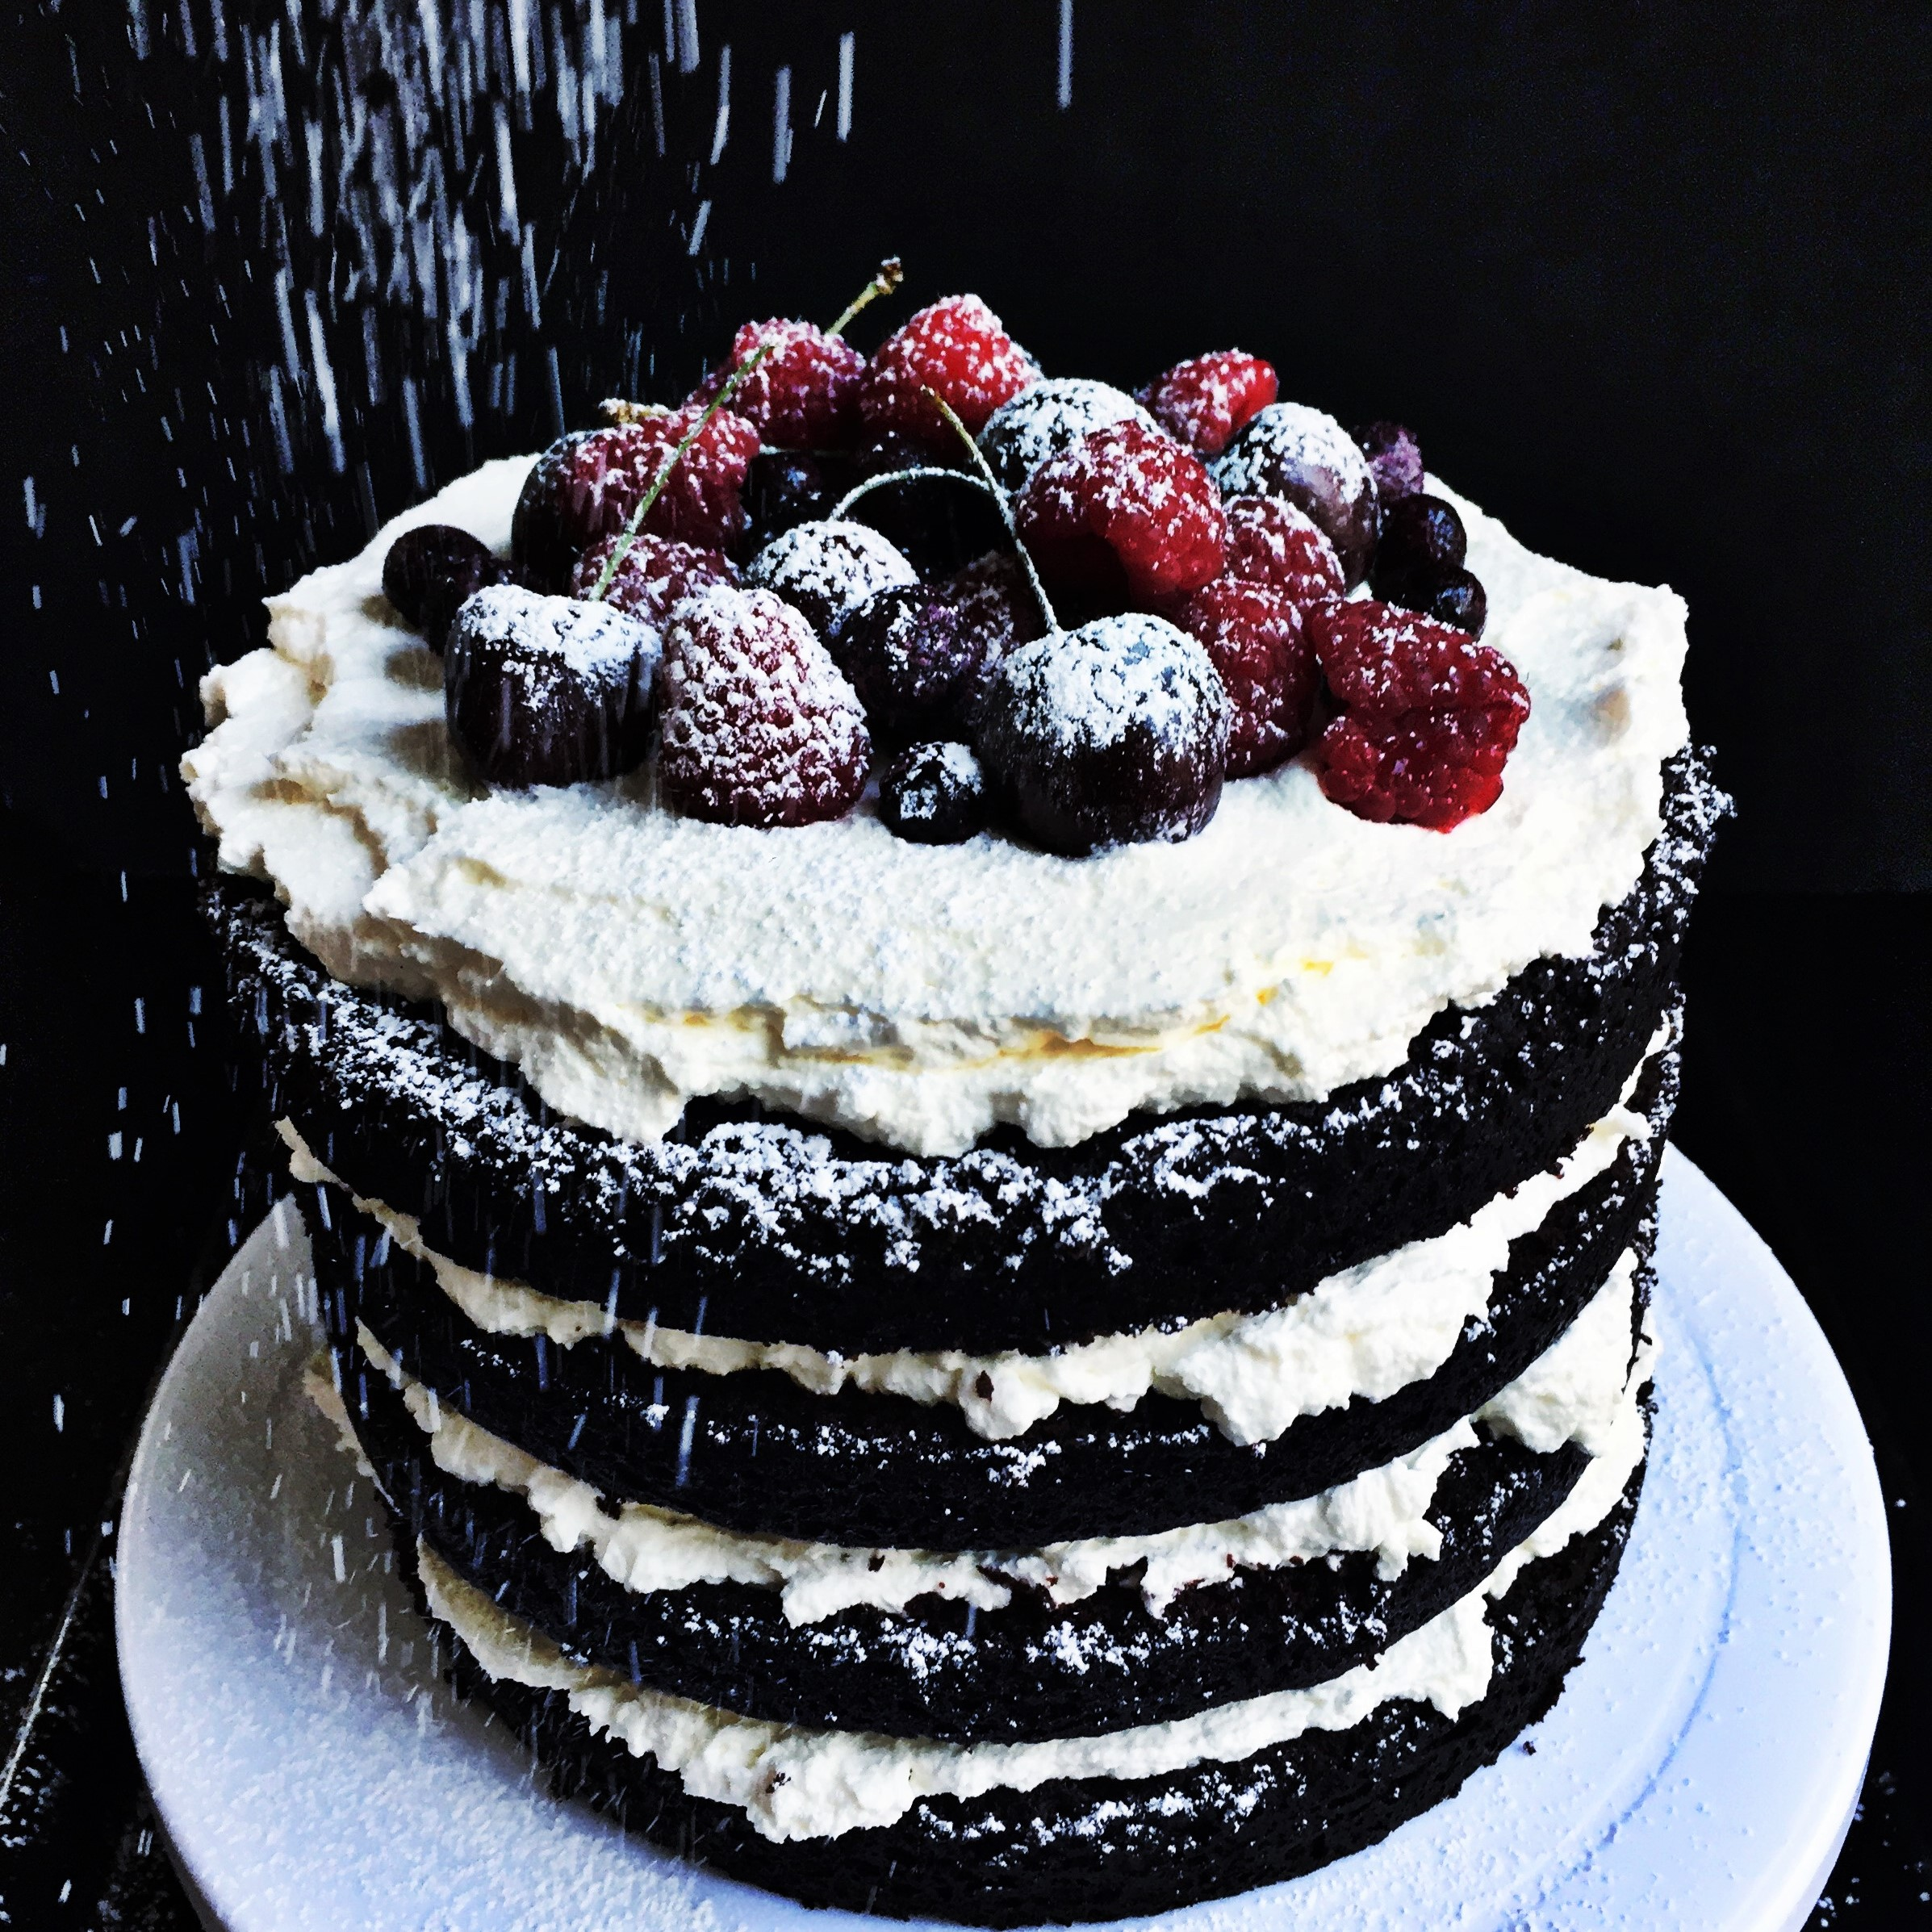 Vegan Chocolate Cake with Whipped Cream and Berries